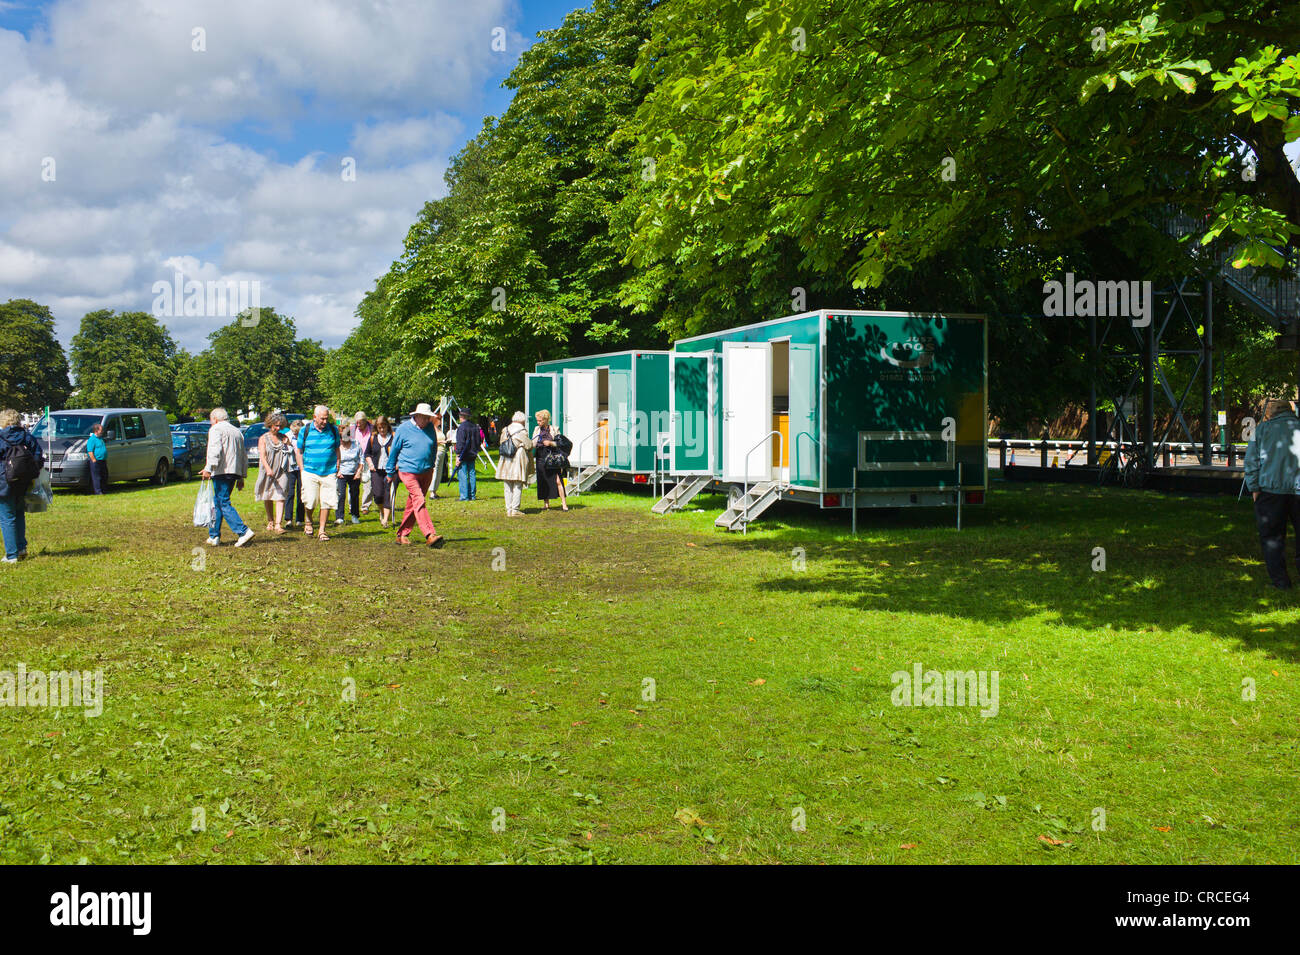 Mobile toilet vans on the car park for Hampton Court Palace flower show - Stock Image